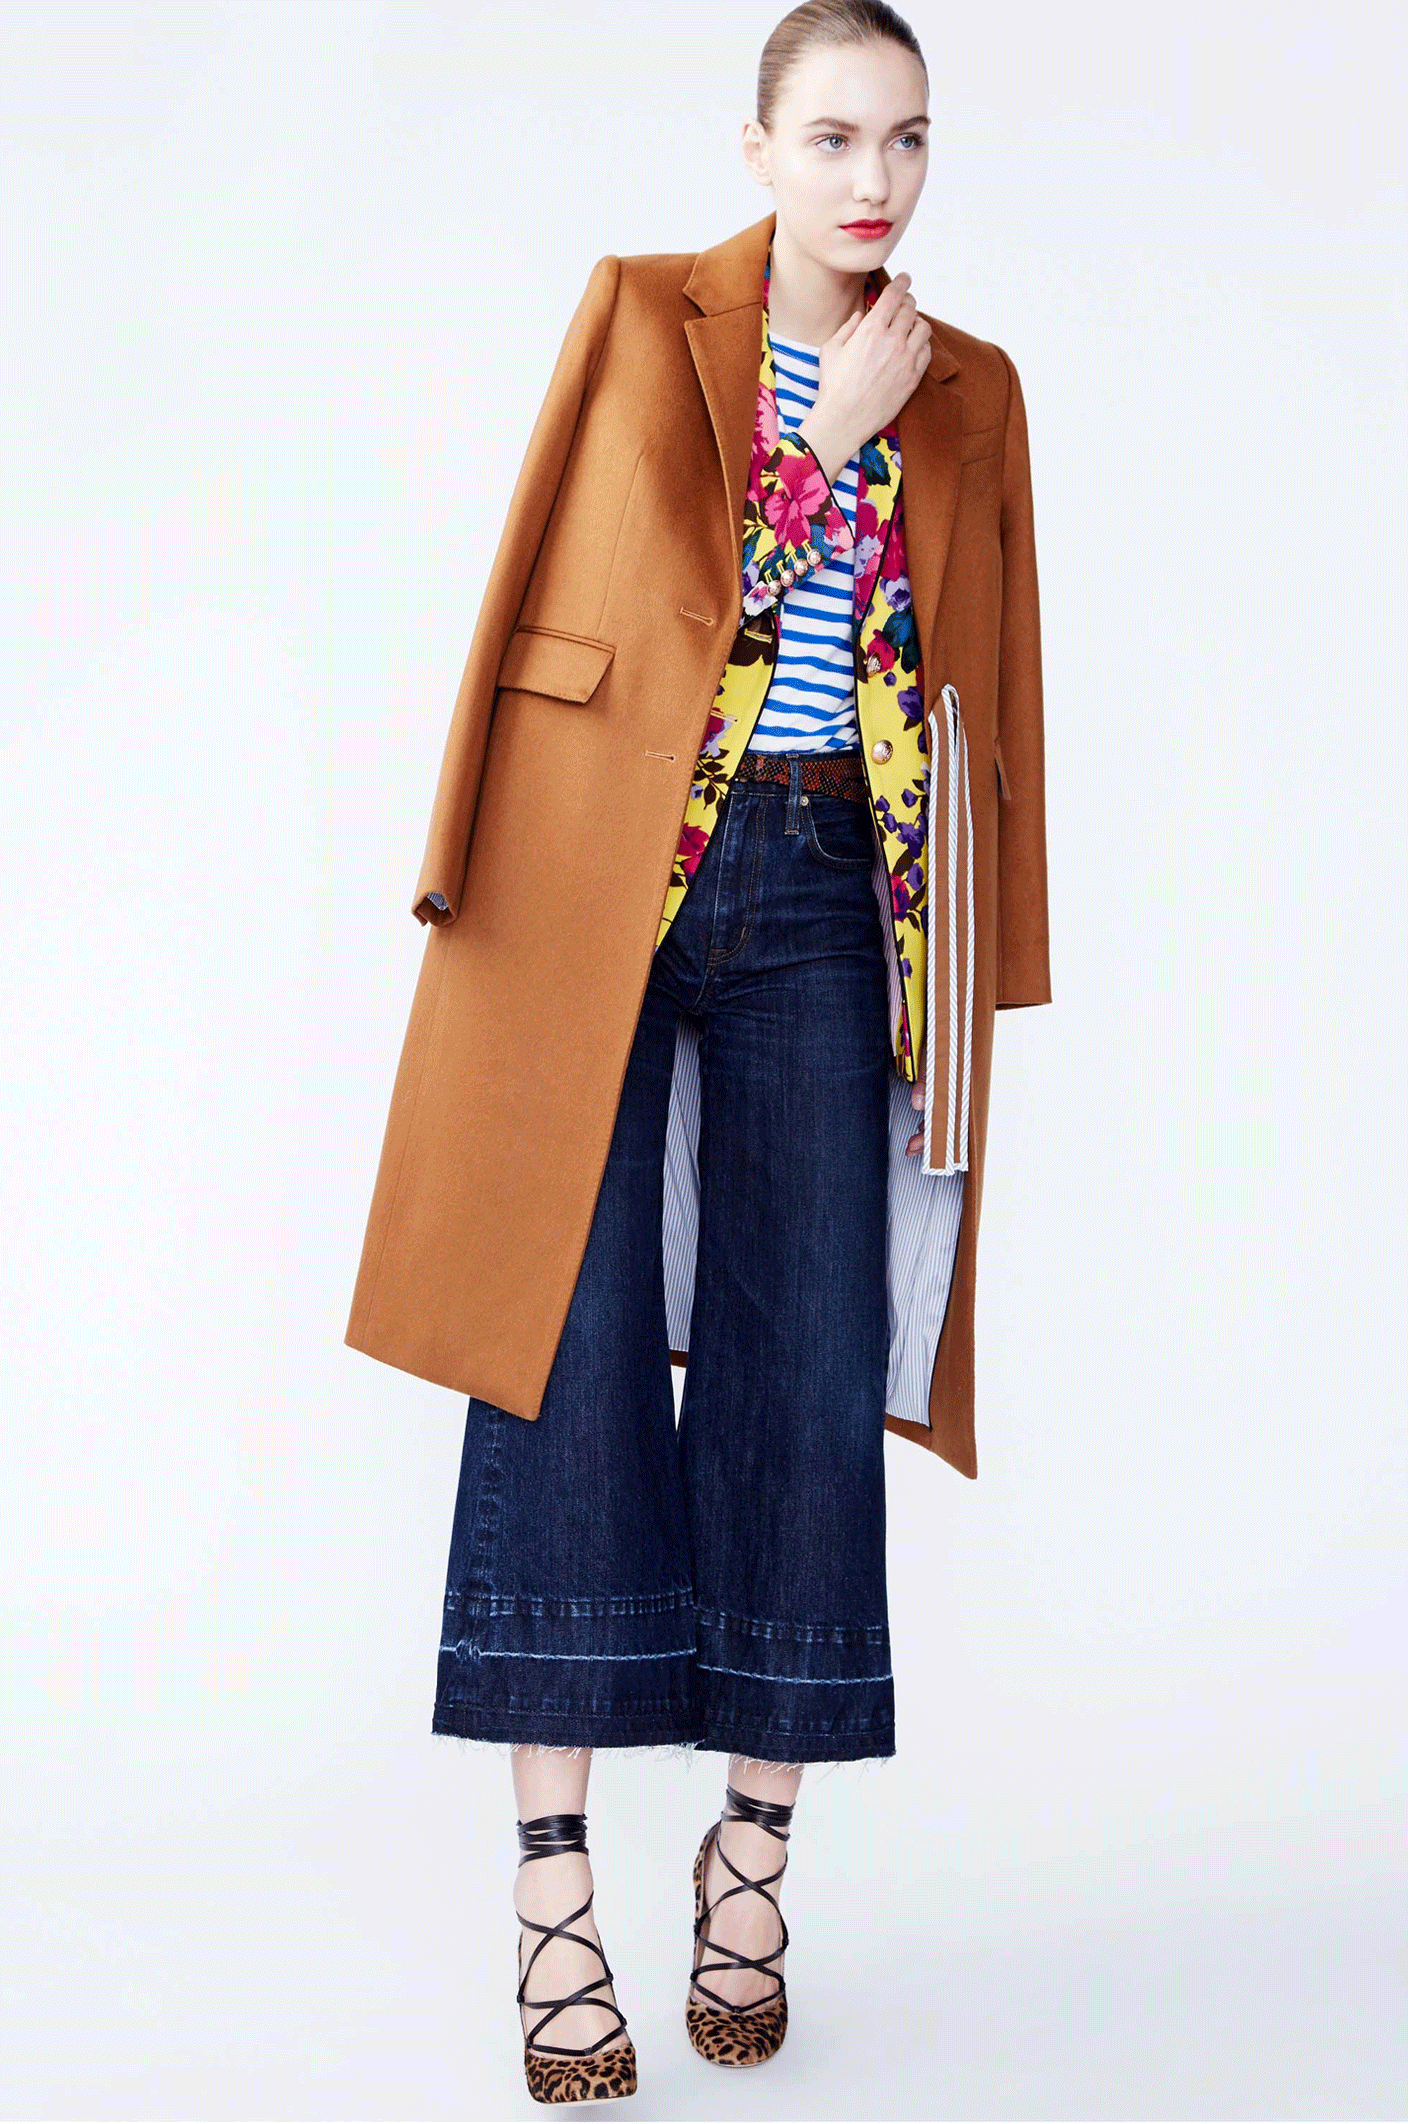 jcrew 2016 fall rtw | @themissprints